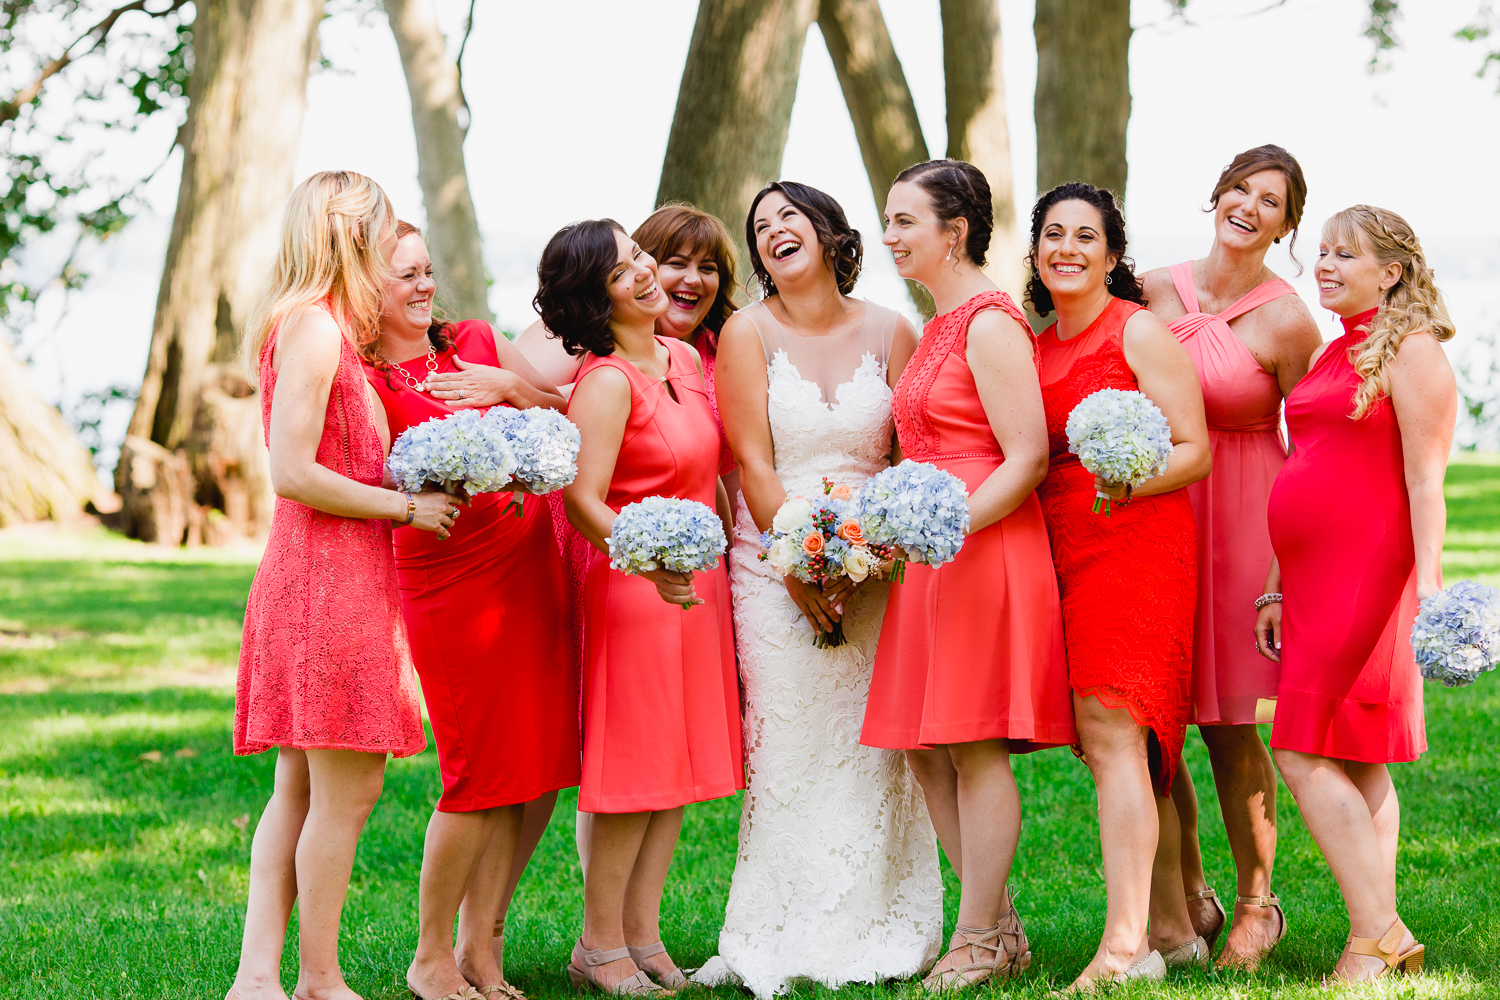 Bridesmaids in coral dresses laugh while standing around the bride.